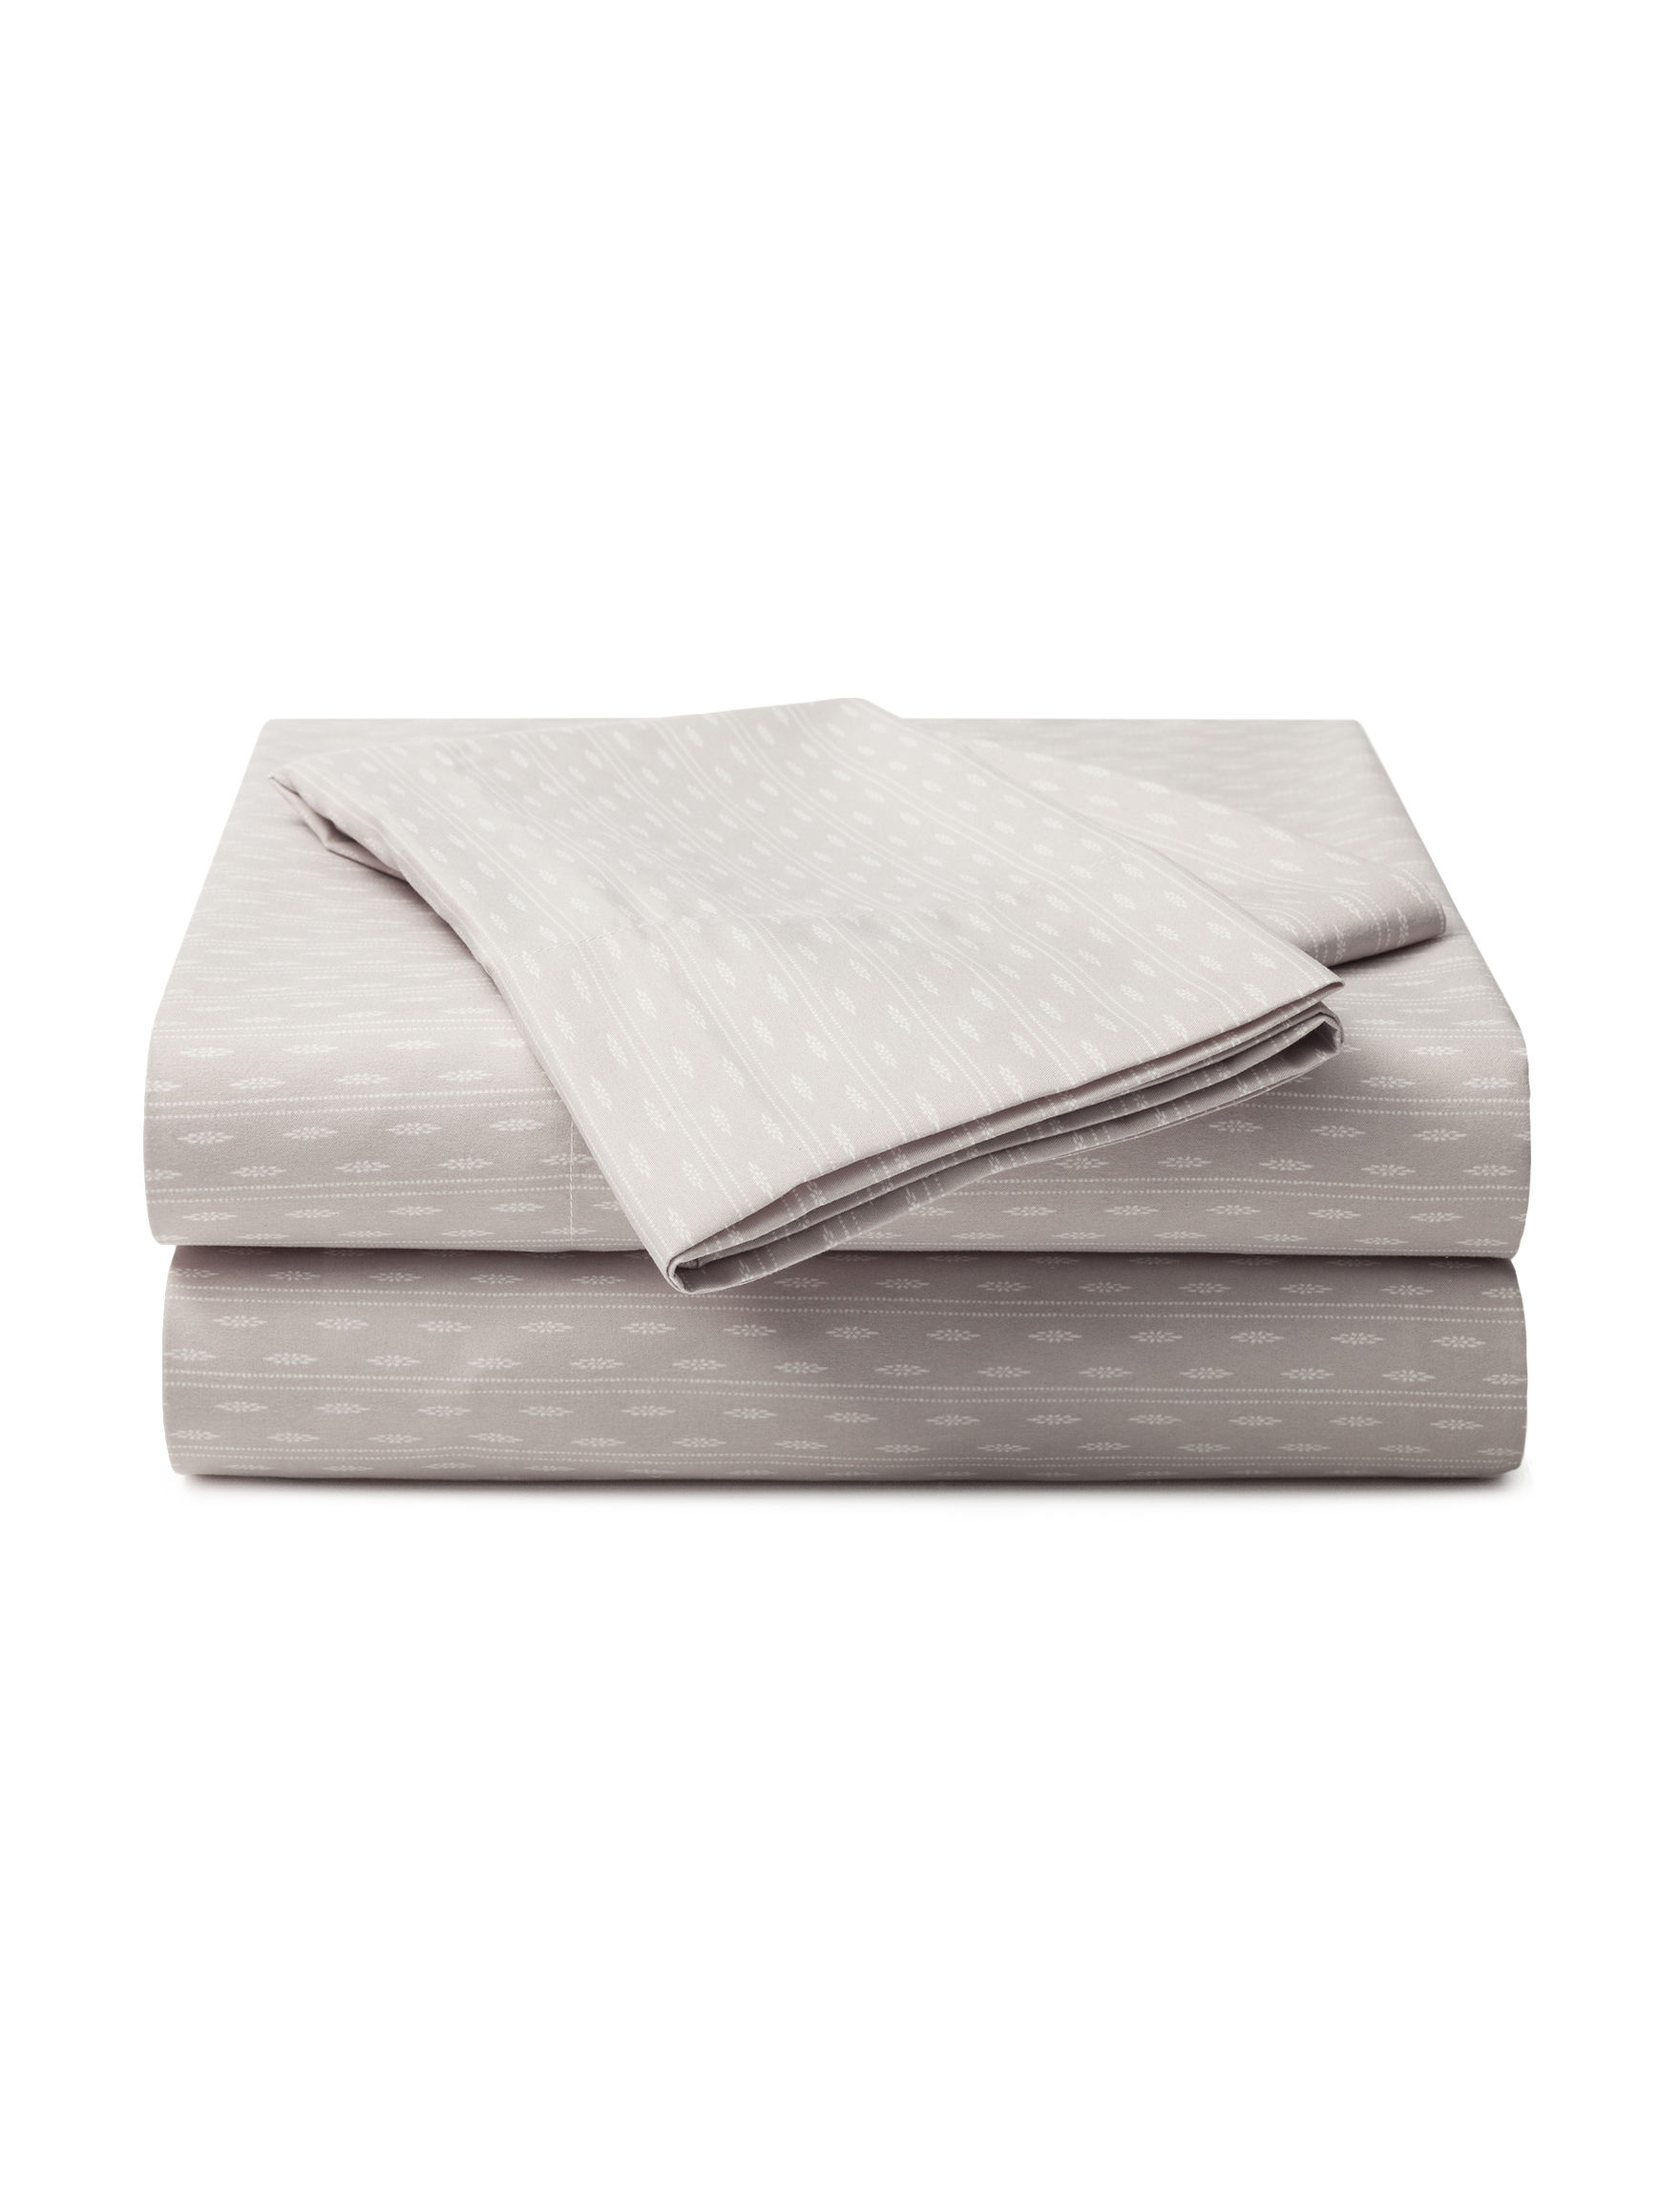 Great Hotels Collection Grey Sheets & Pillowcases